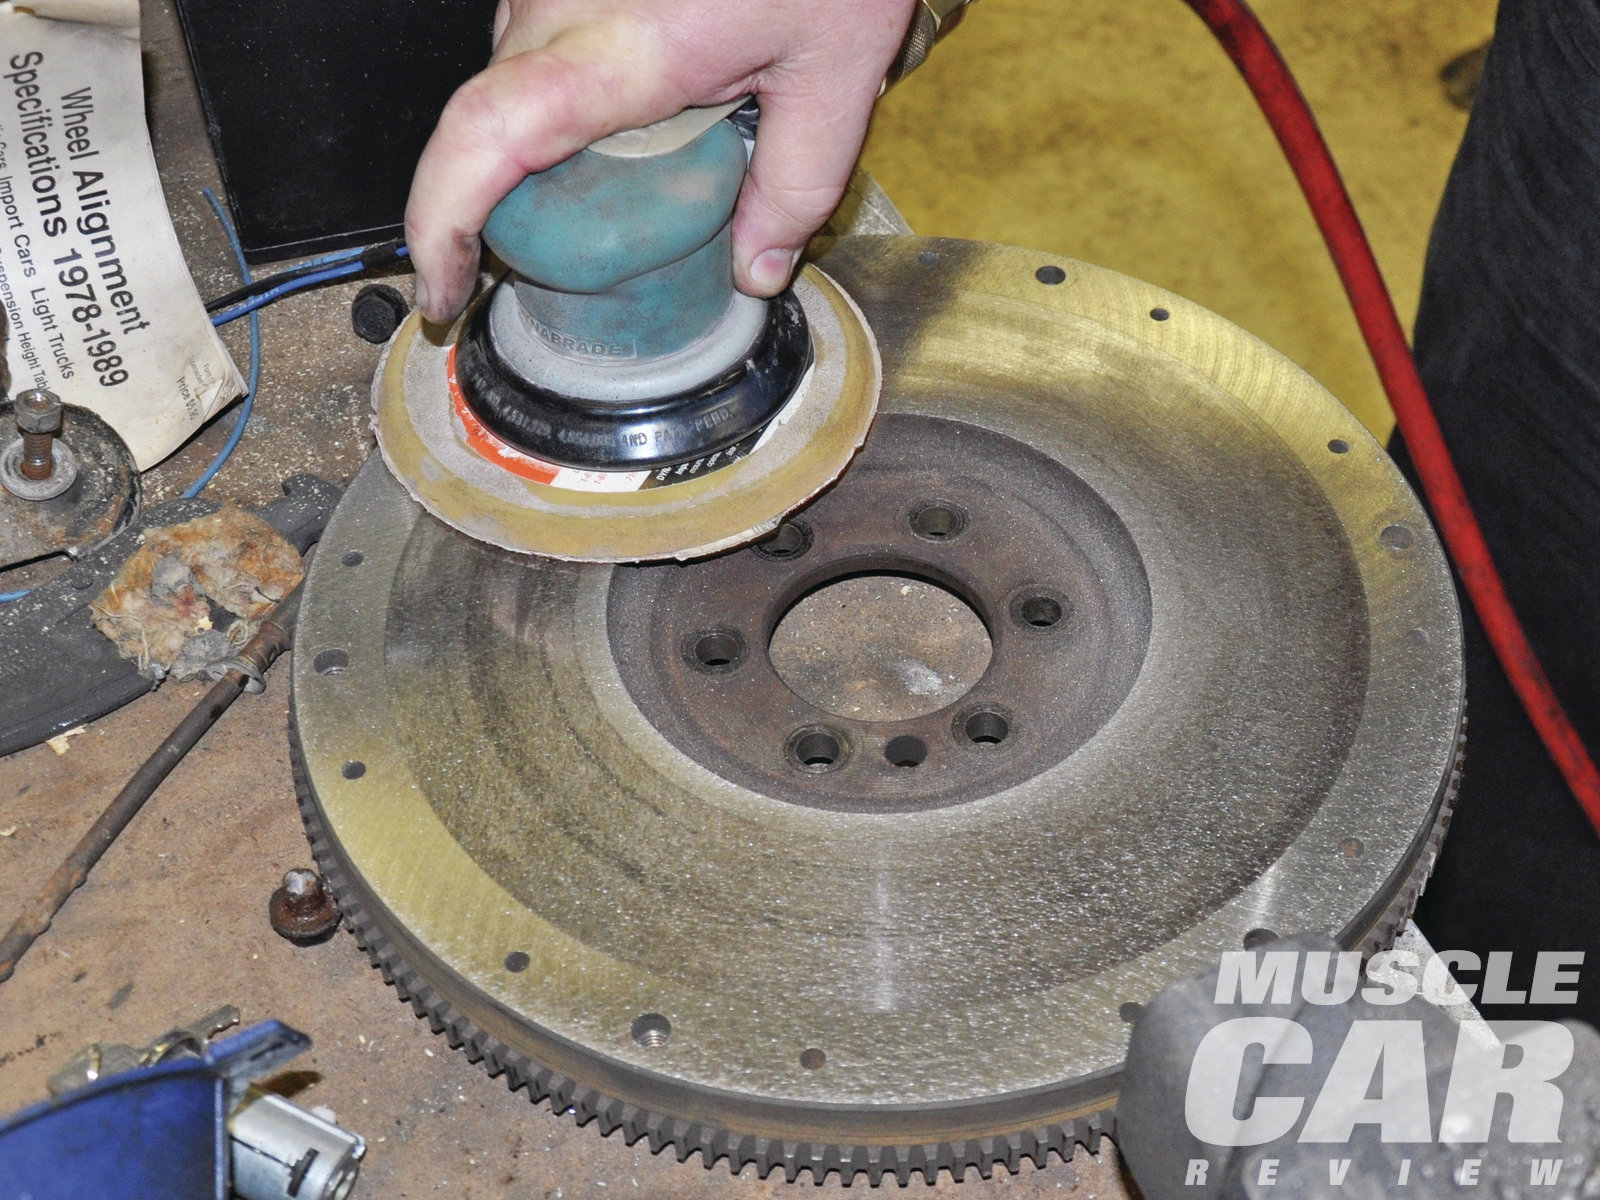 The flywheel should be resurfaced at the local machine shop. However, since the flywheel showed signs of a recent resurfacing, Webster decided that a DA with 40-grit paper would prepare the surface sufficiently.